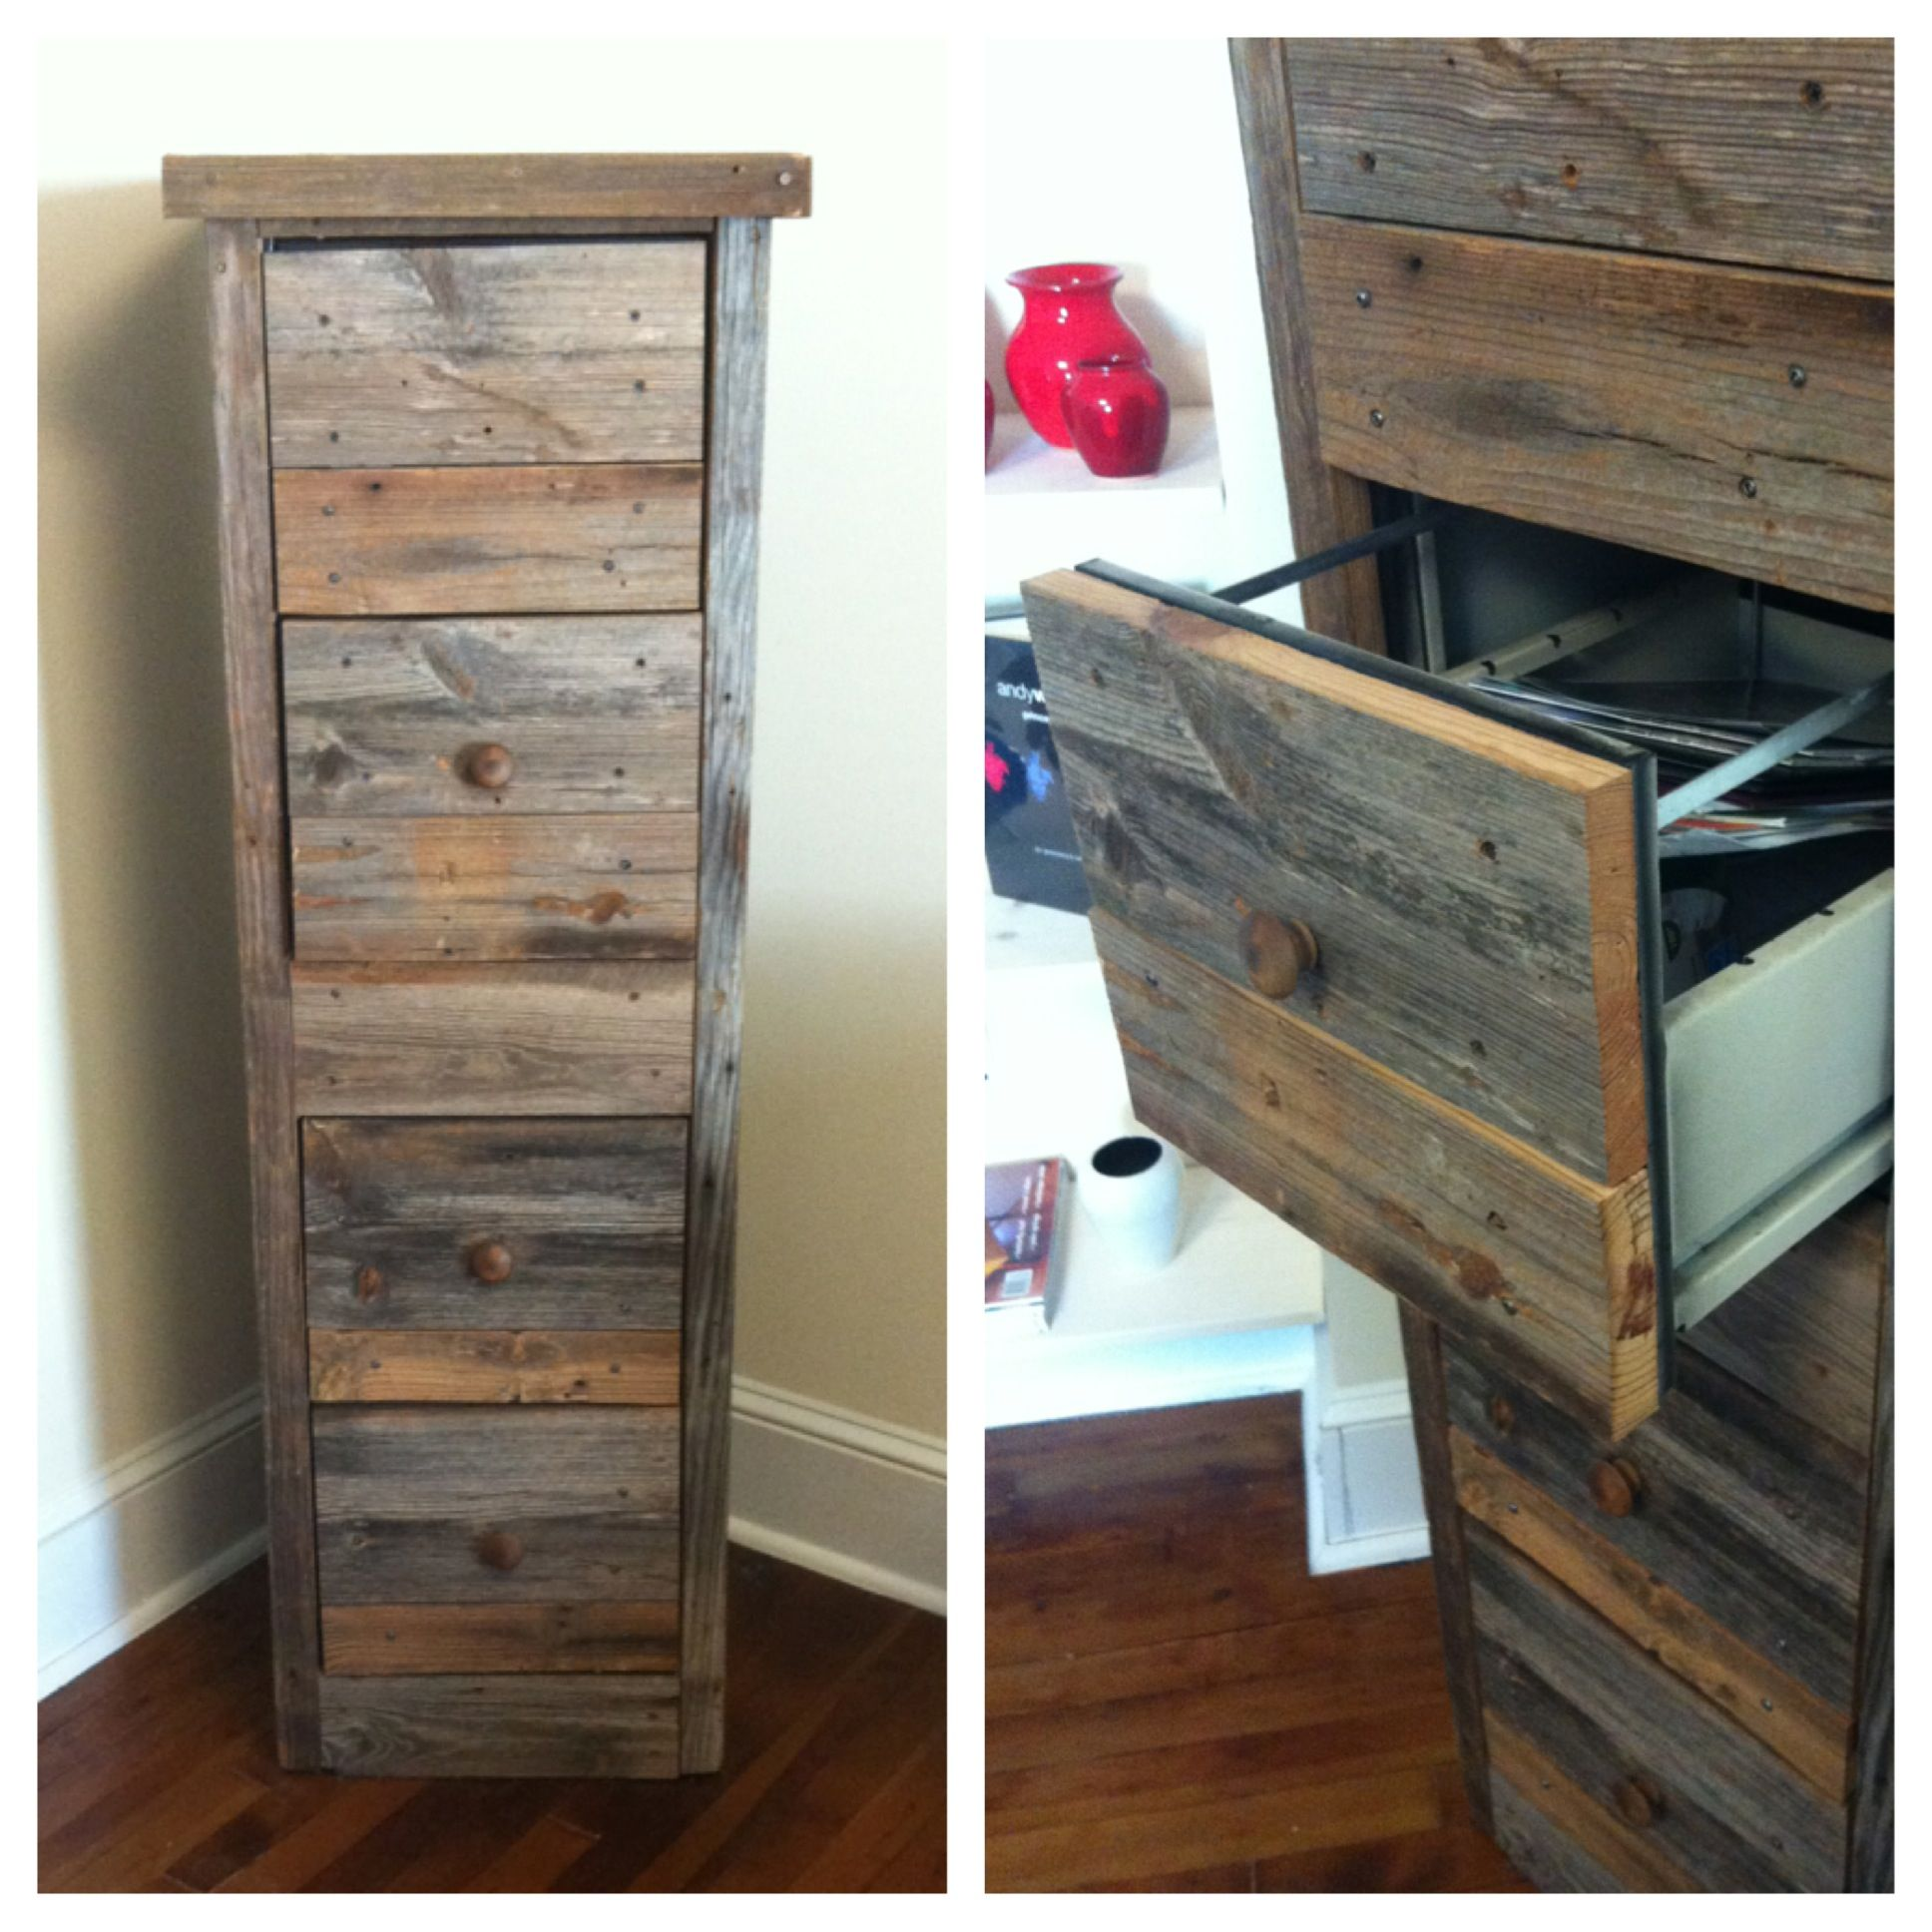 Ordinaire Awesome Way To Make An Old File Cabinet Looking Rustic And Amazing!